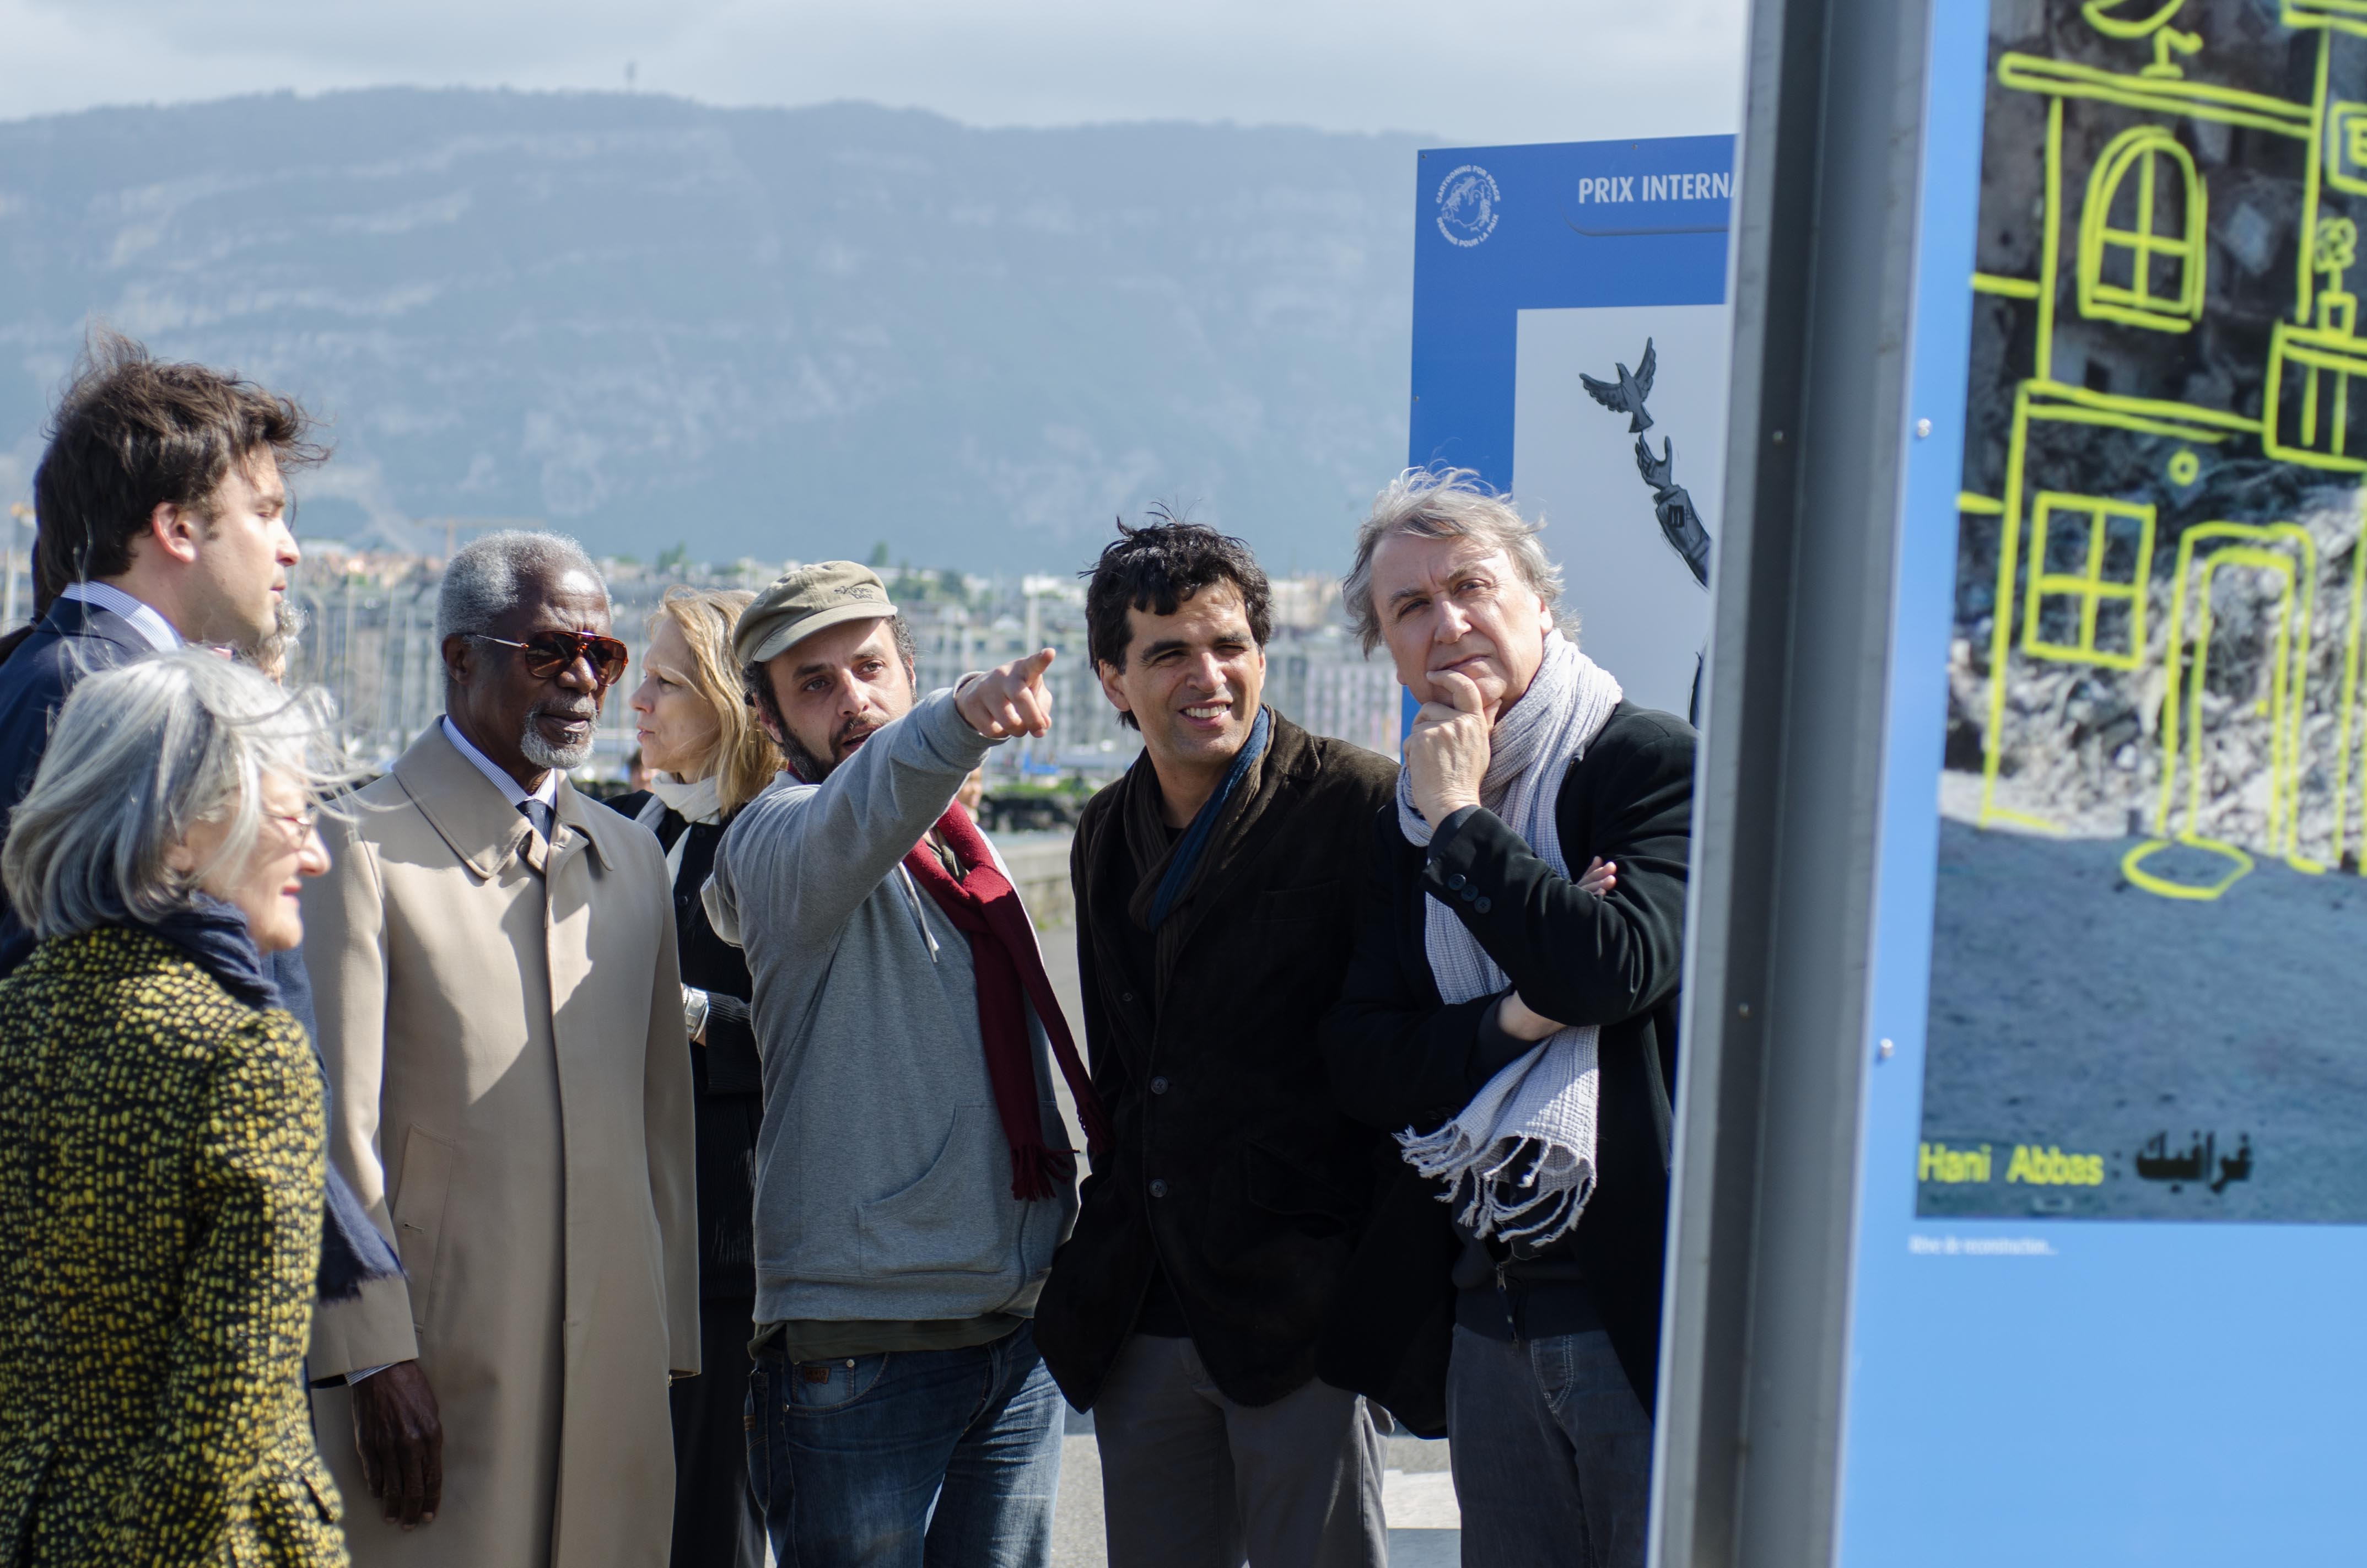 Opening of the exhibition with Kofi Annan, on May, 3, 2014